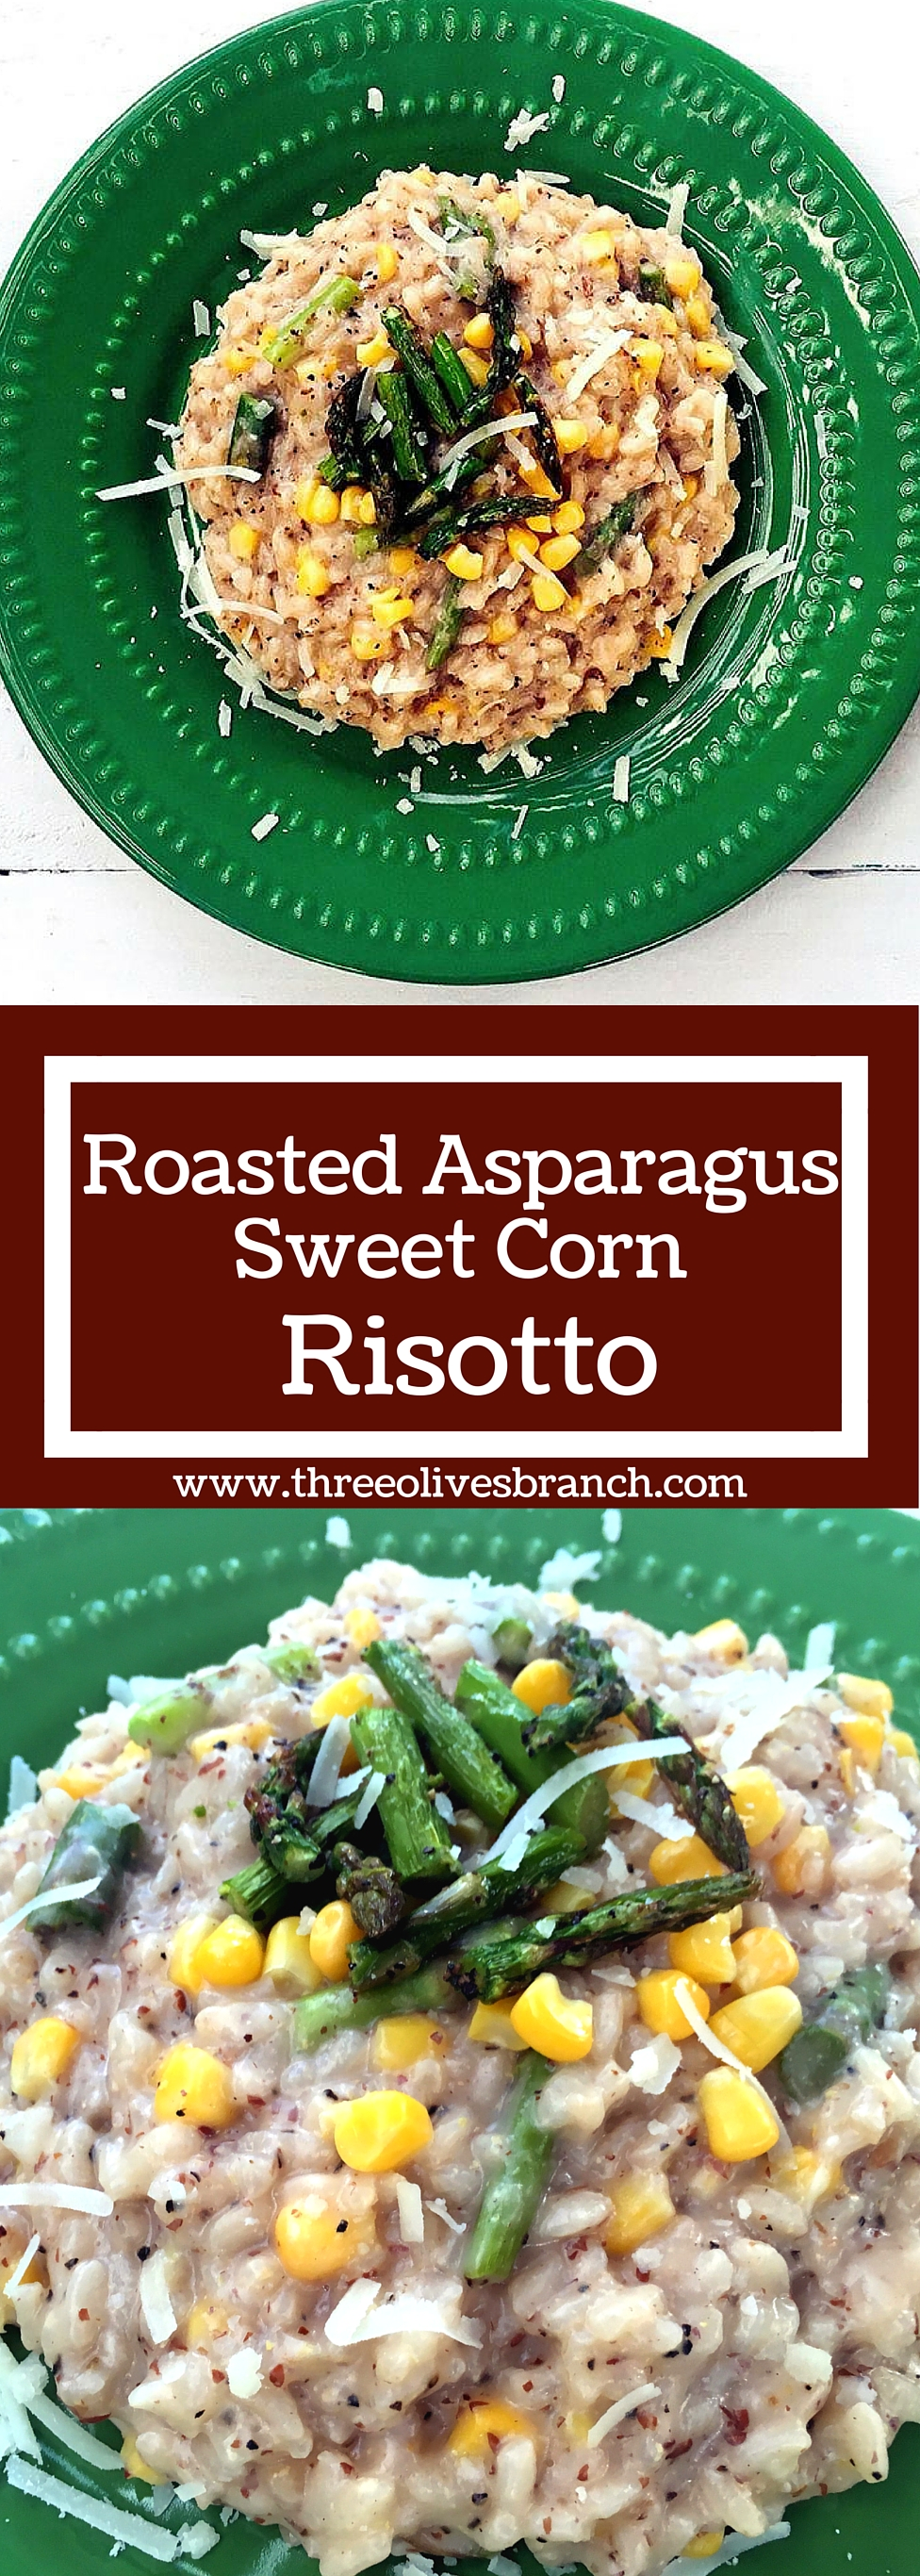 Roasted Asparagus and Sweet Corn Risotto - Three Olives Branch